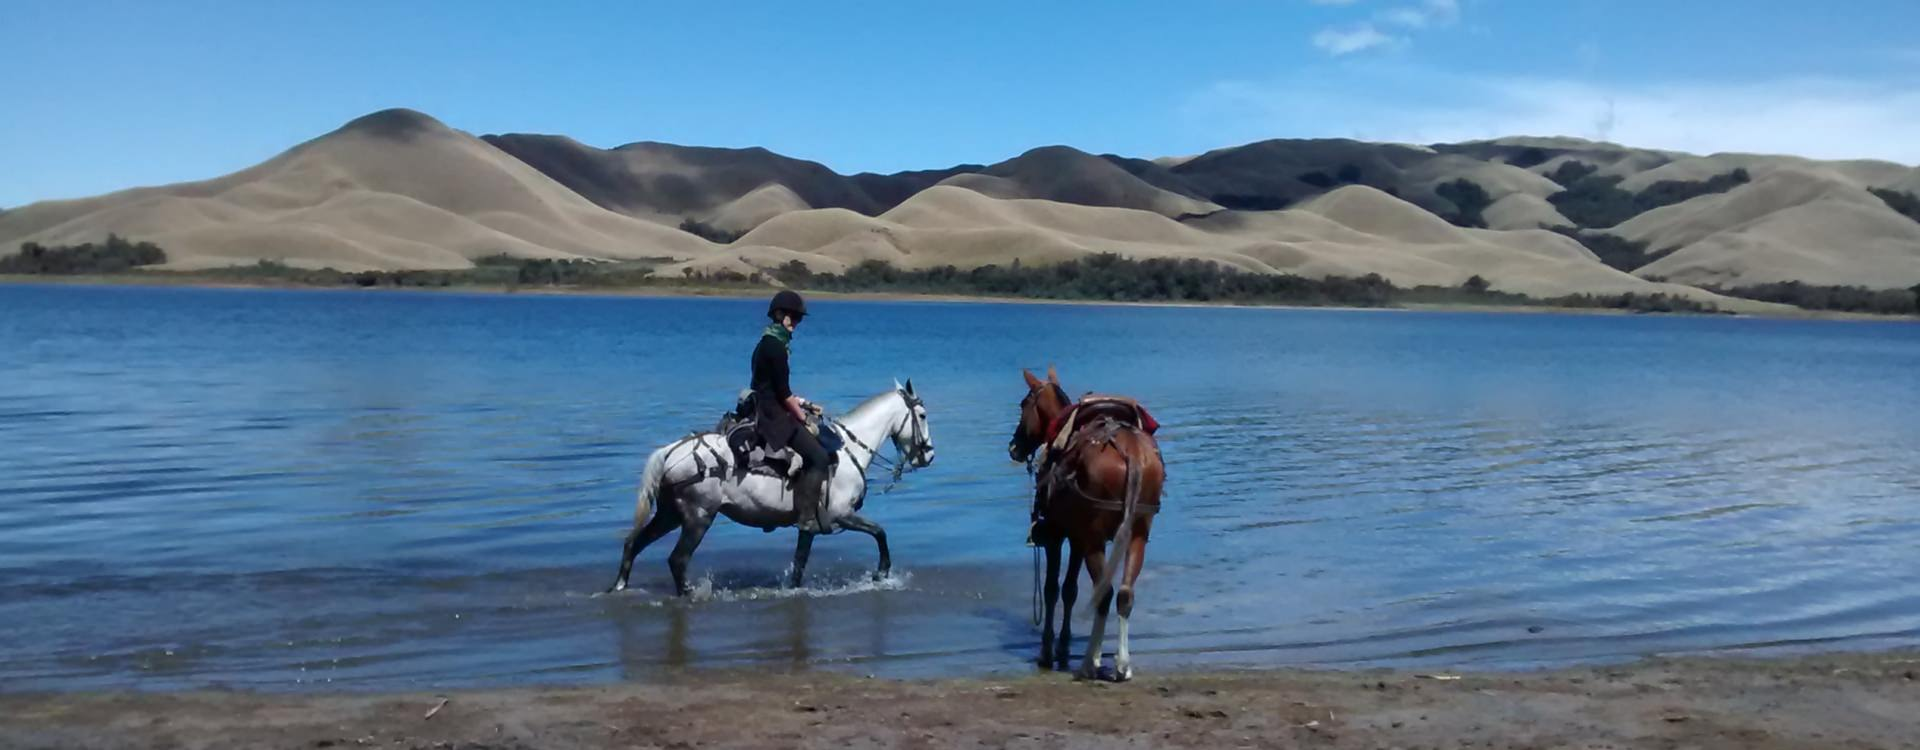 Riding in the Ecuadorian Andes